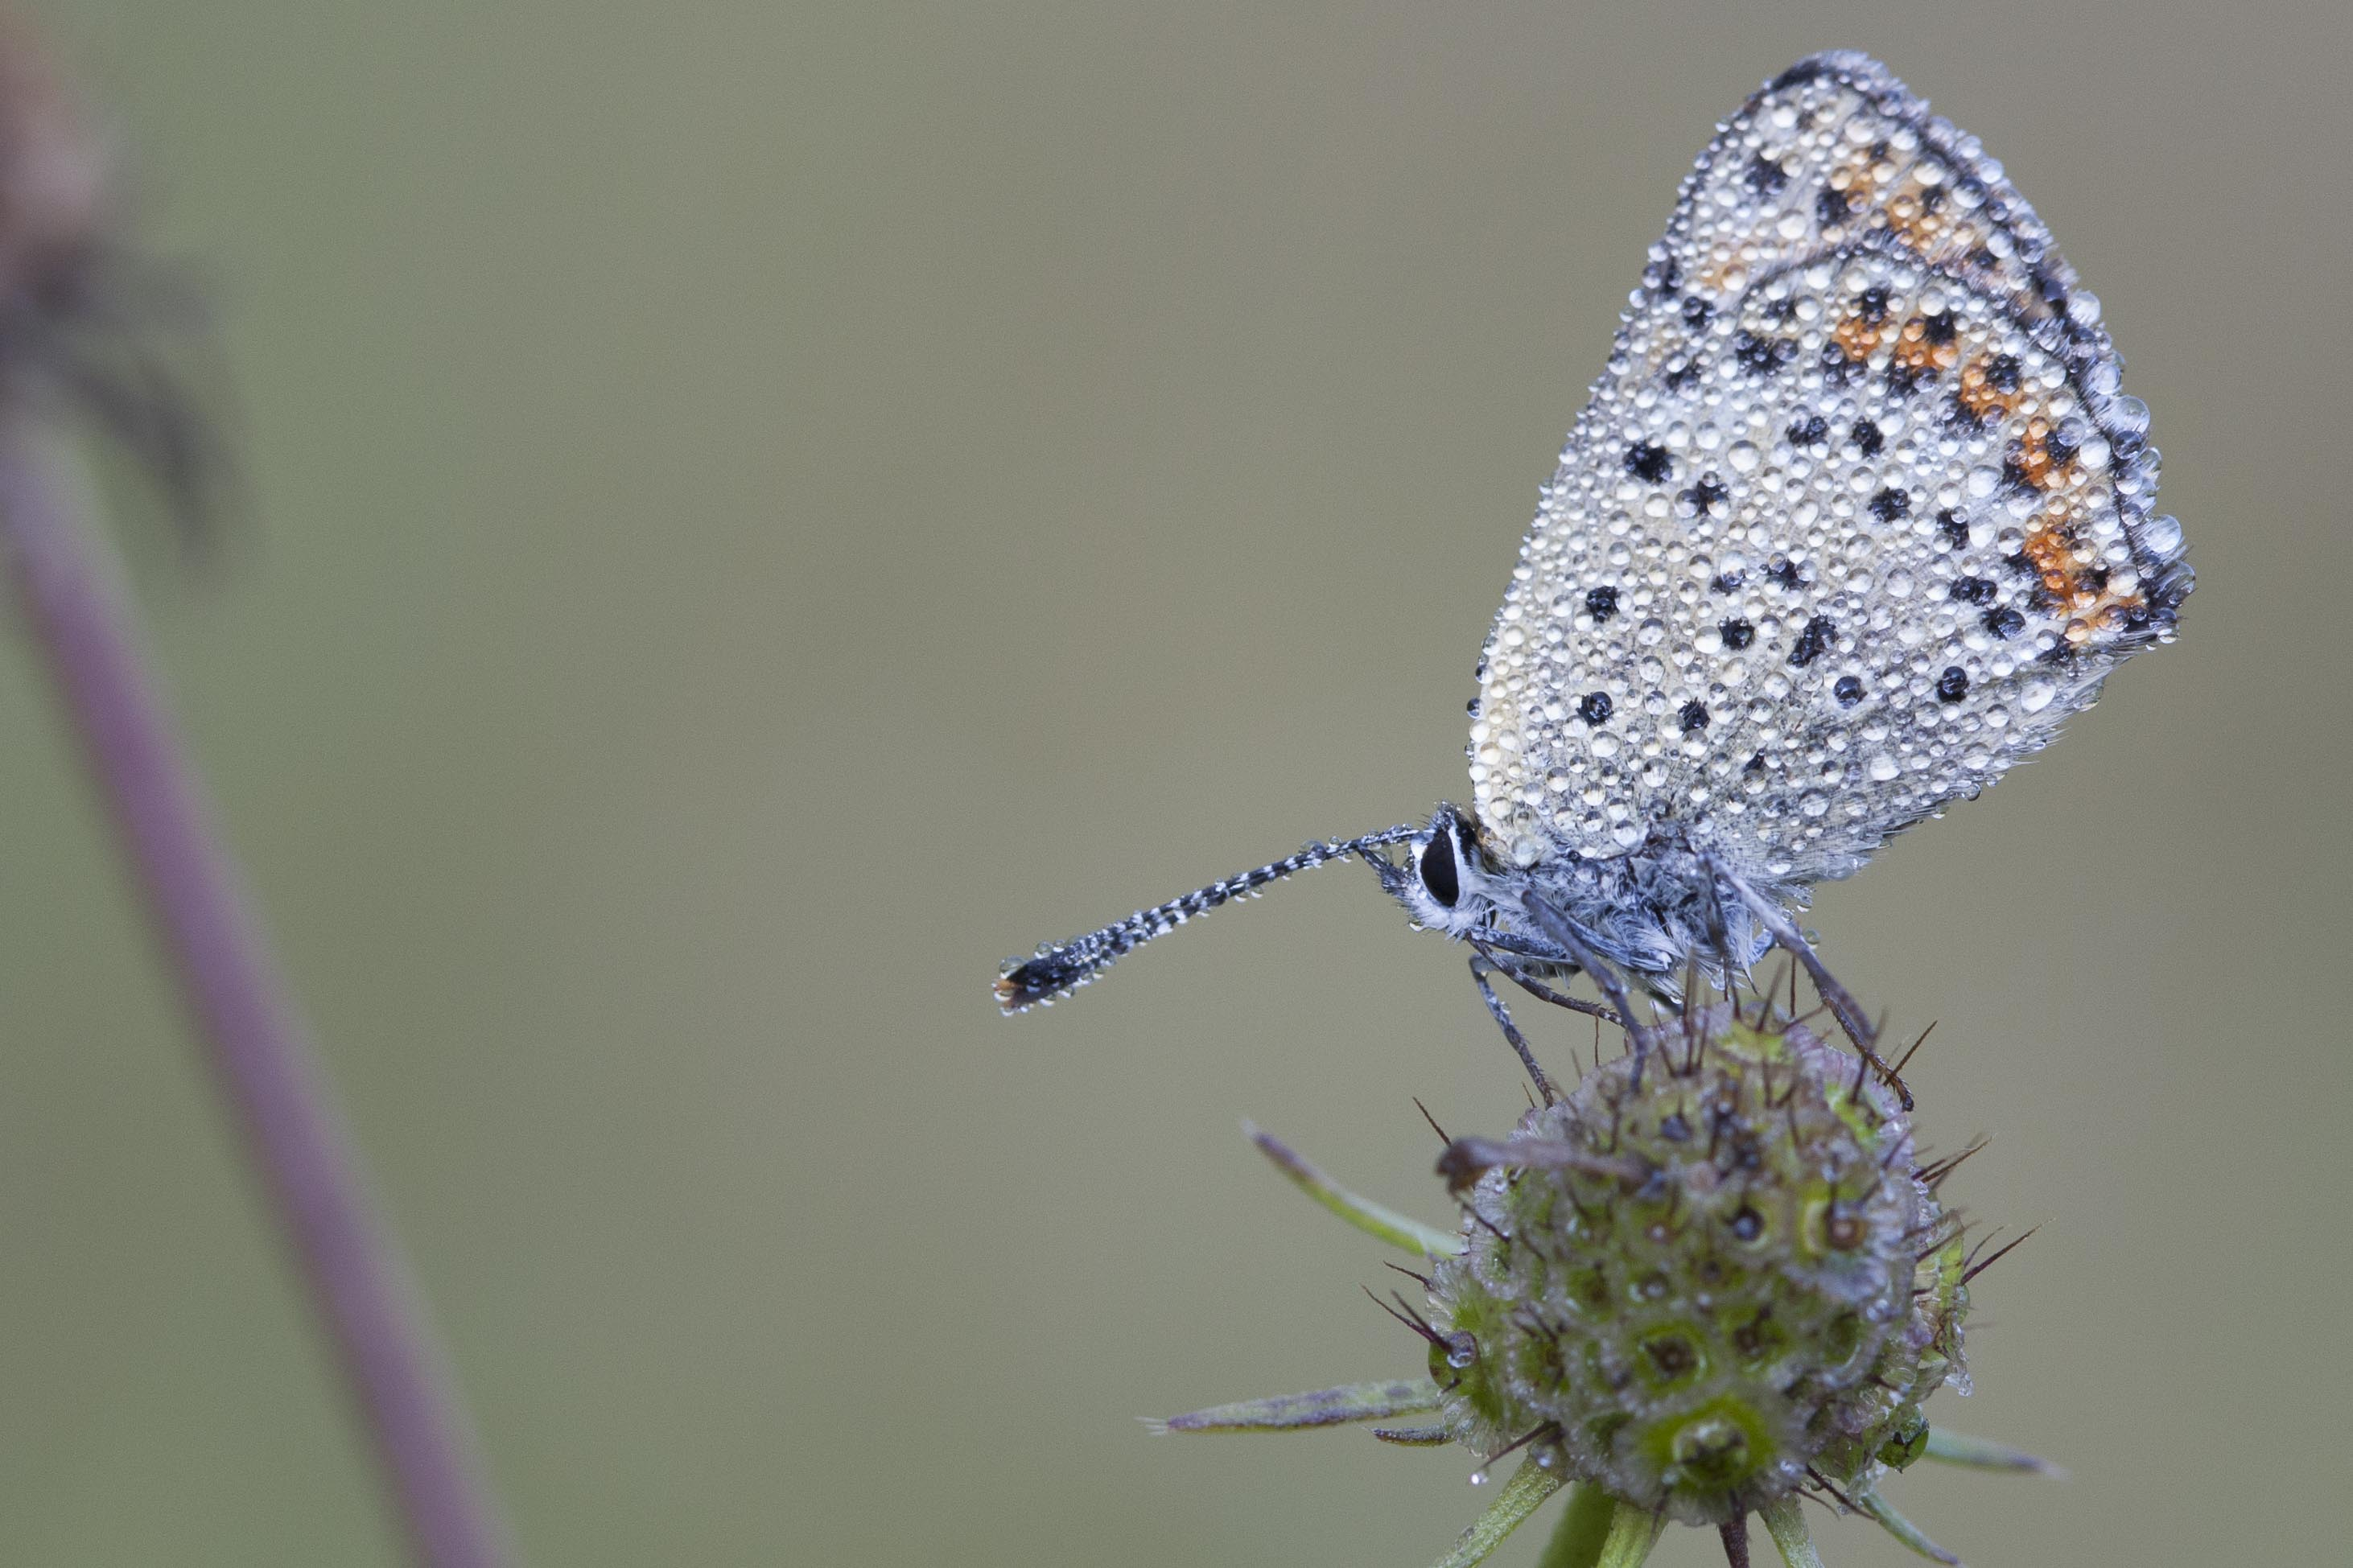 Rode vuurvlinder  - Lycaena hippothoe